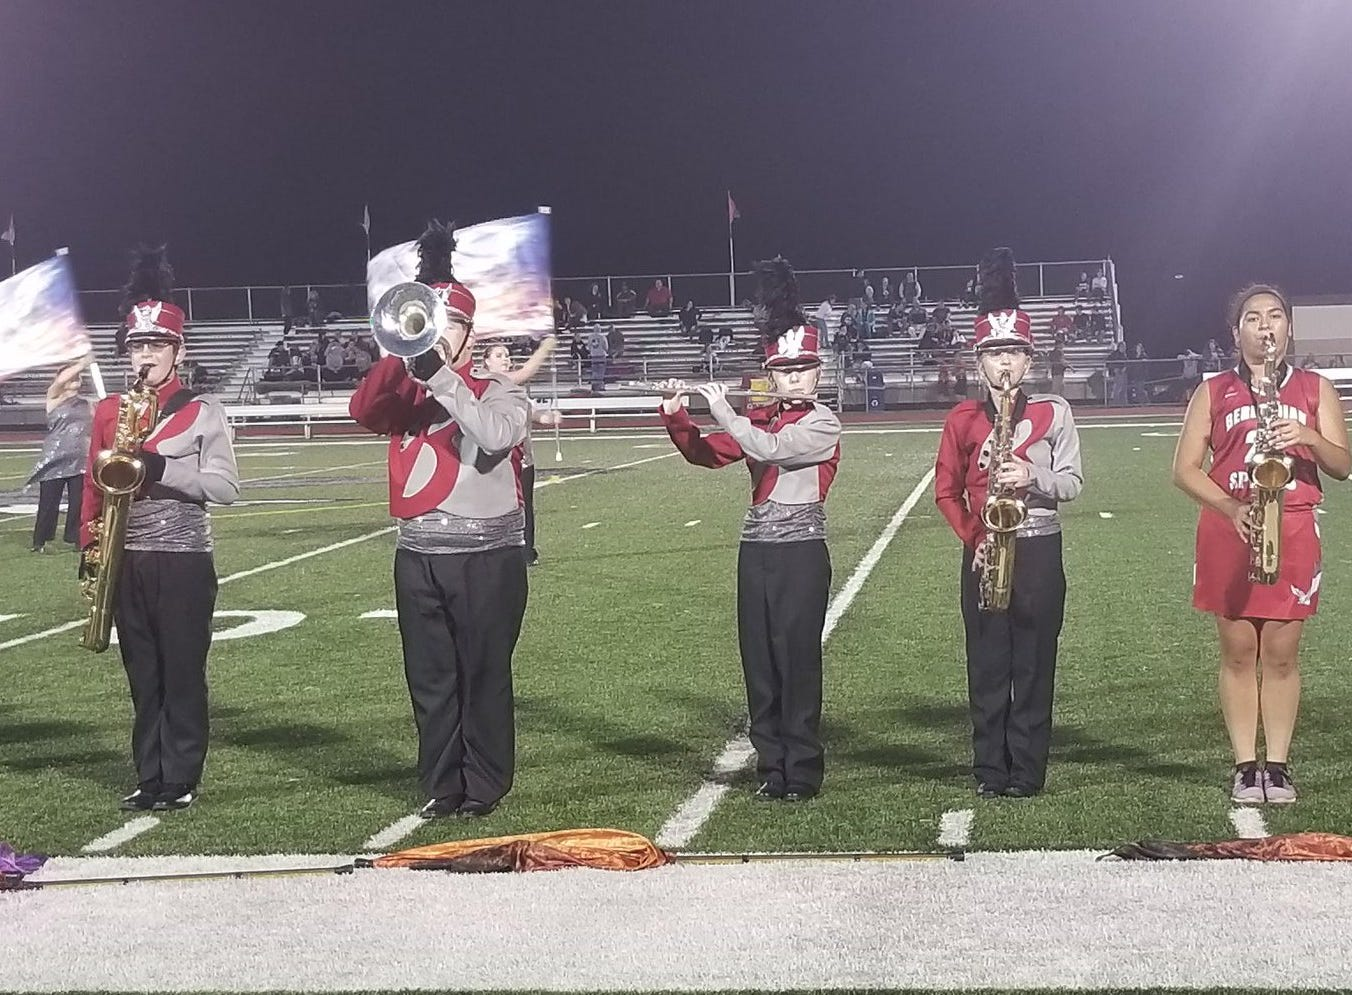 The Bermudian Springs band performs during halftime of the Eagles' game against Fairfield on Friday, Sept. 21, 2018.